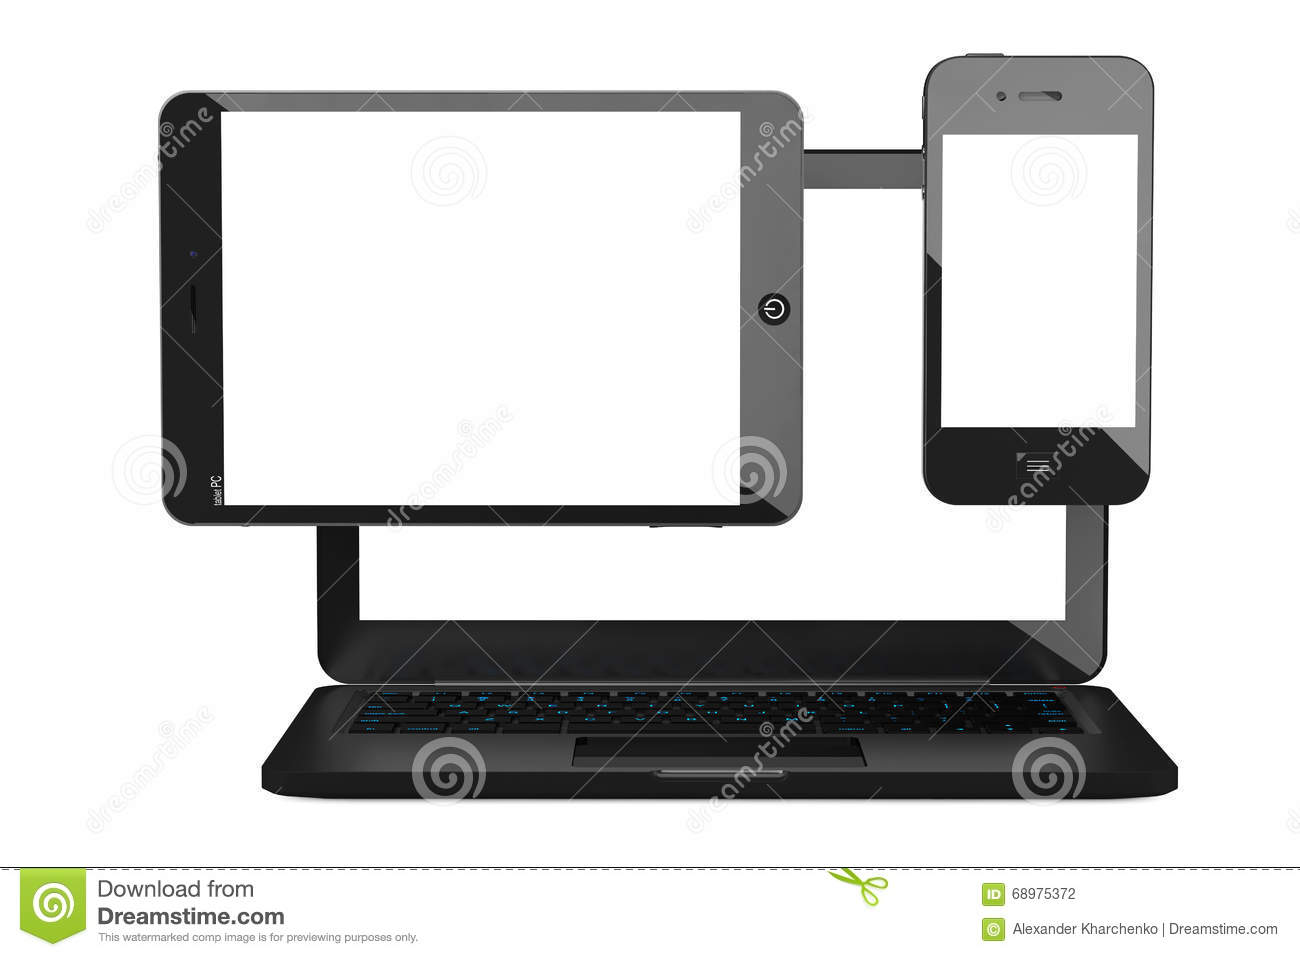 Laptop, Mobile Phone and Tablet PC. 3d rendering